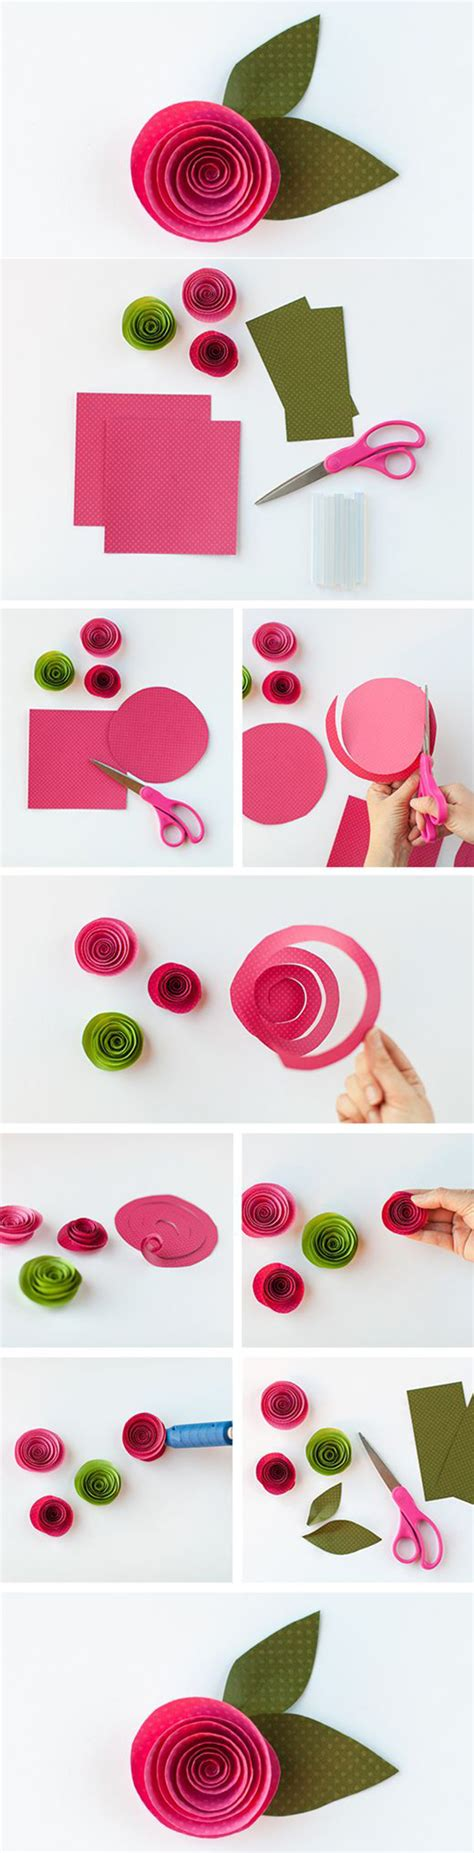 How To Make Paper Roses At Home - easy and beautiful paper flower best diy ideas